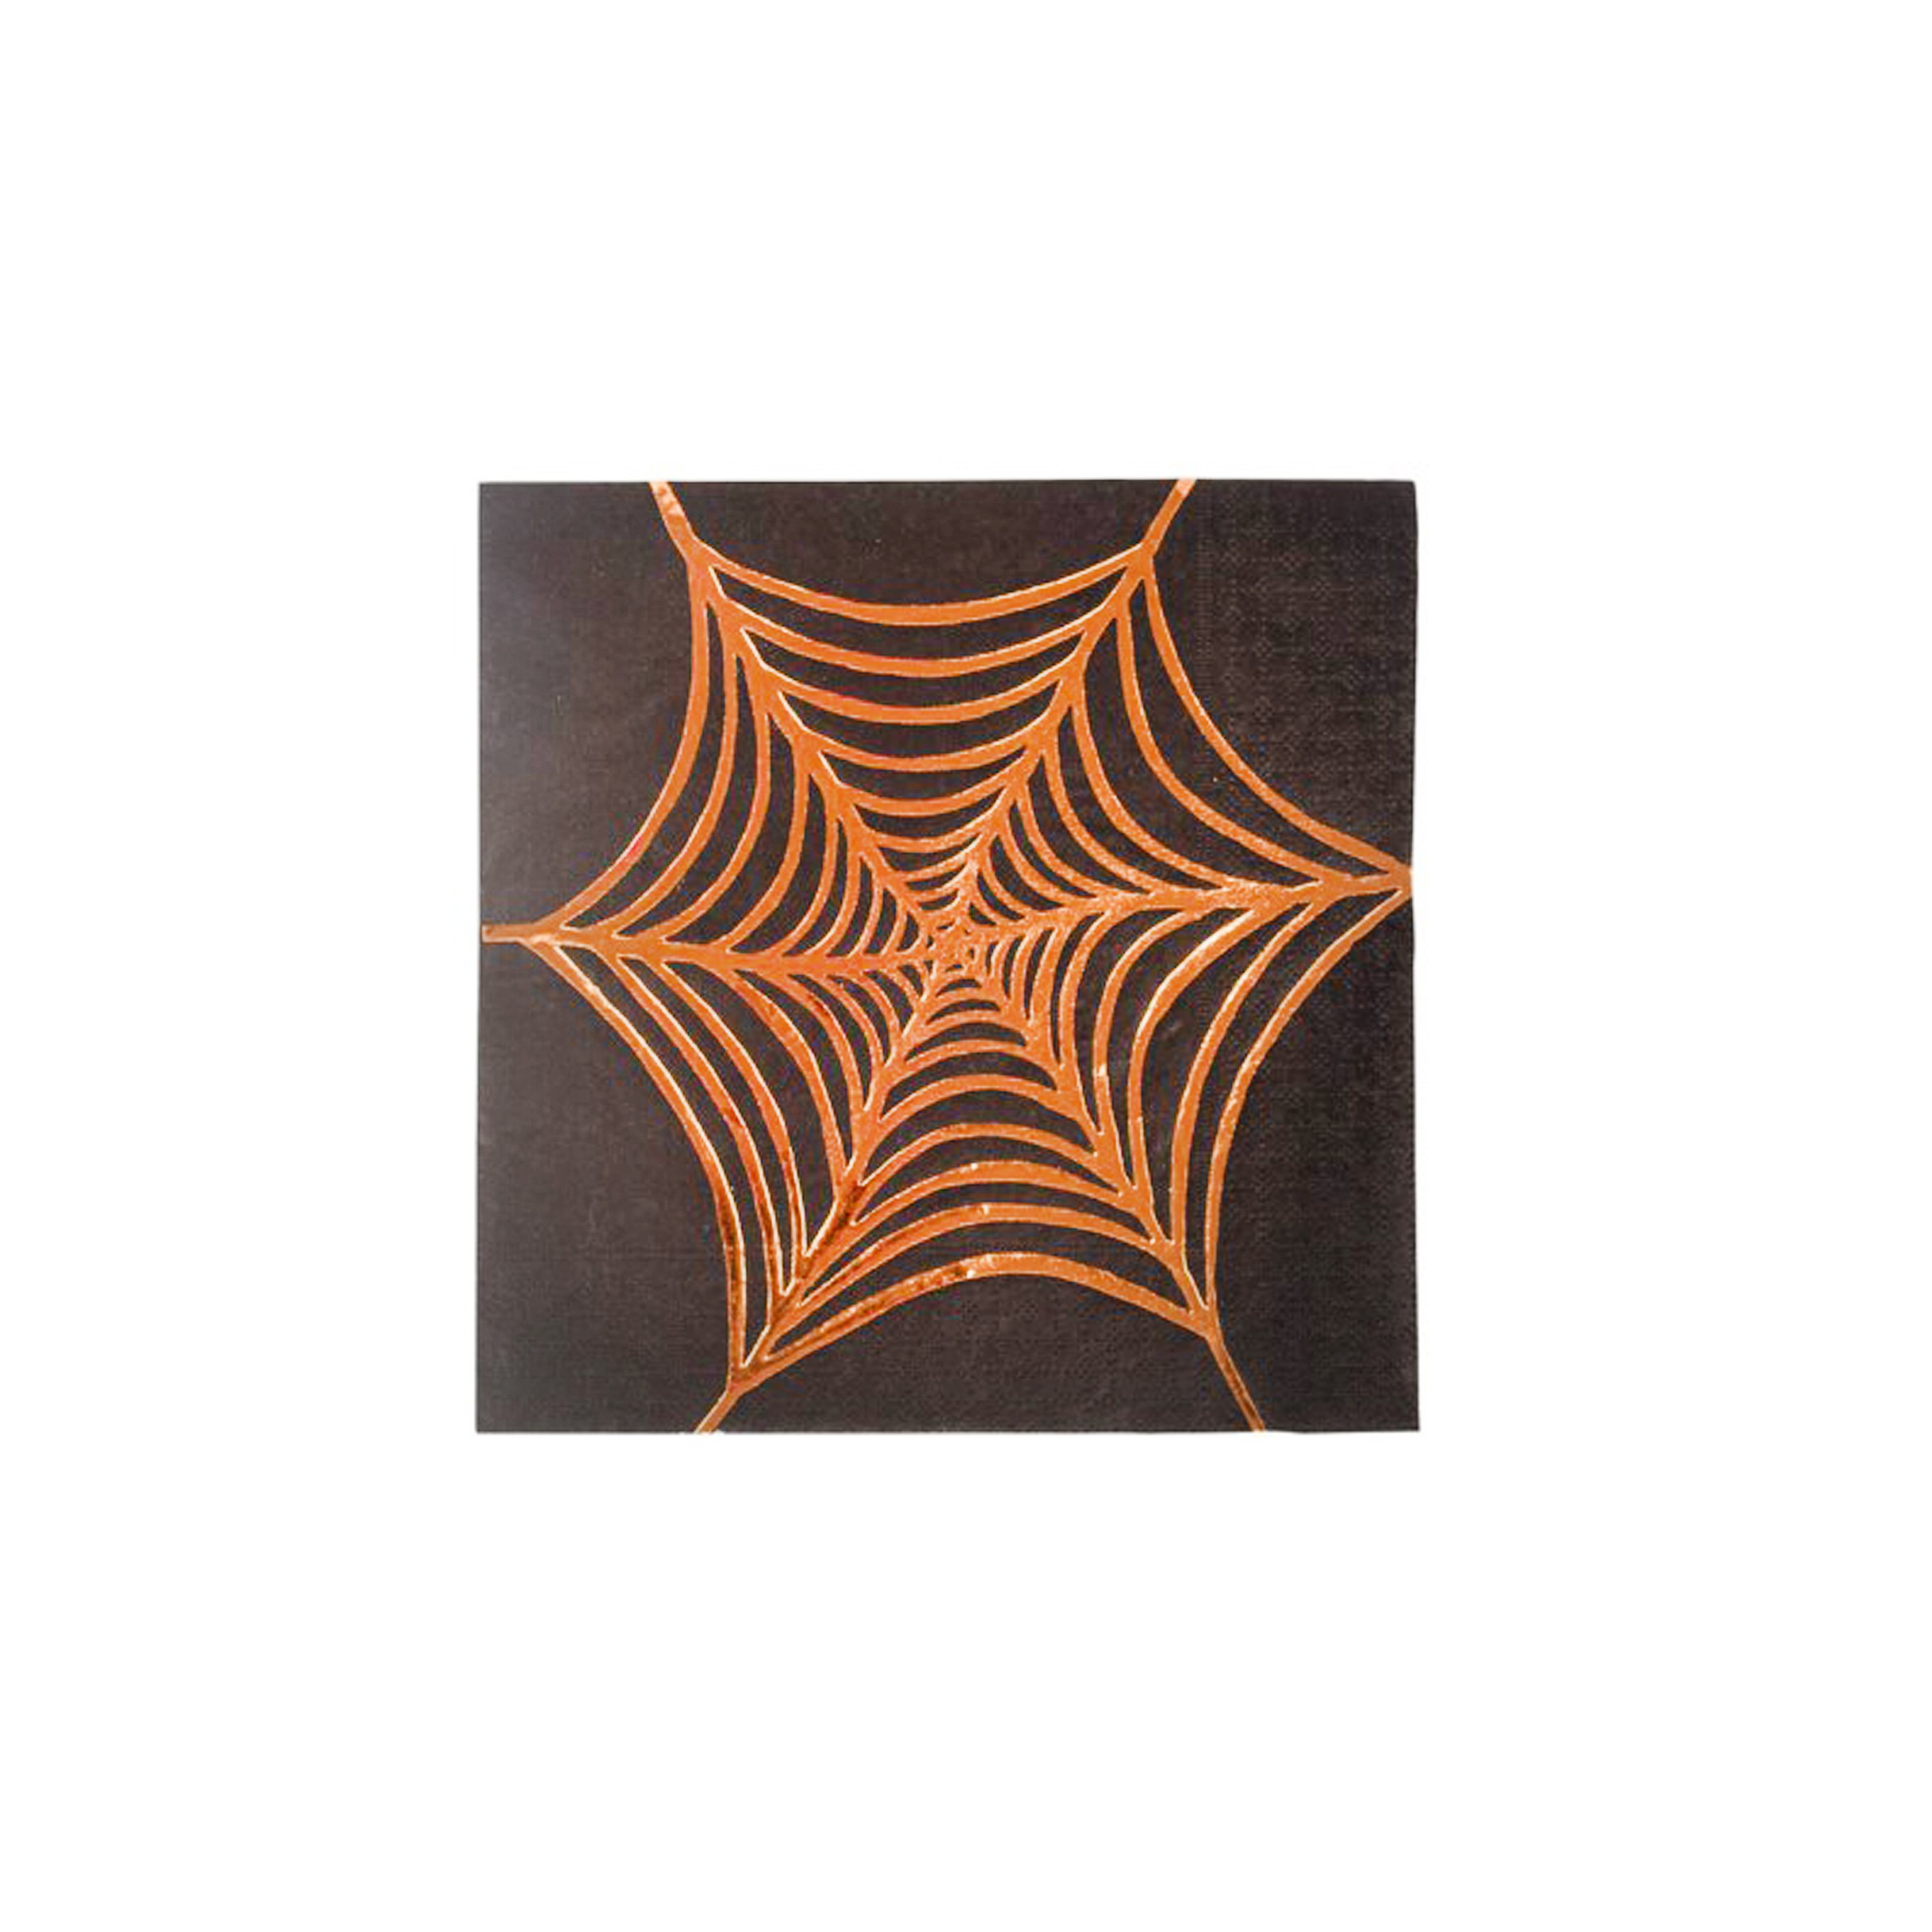 BUY ME / NEW ITEM $8.99 each Rose Gold Foil Cobweb Small Paper Napkins - 16 Pack